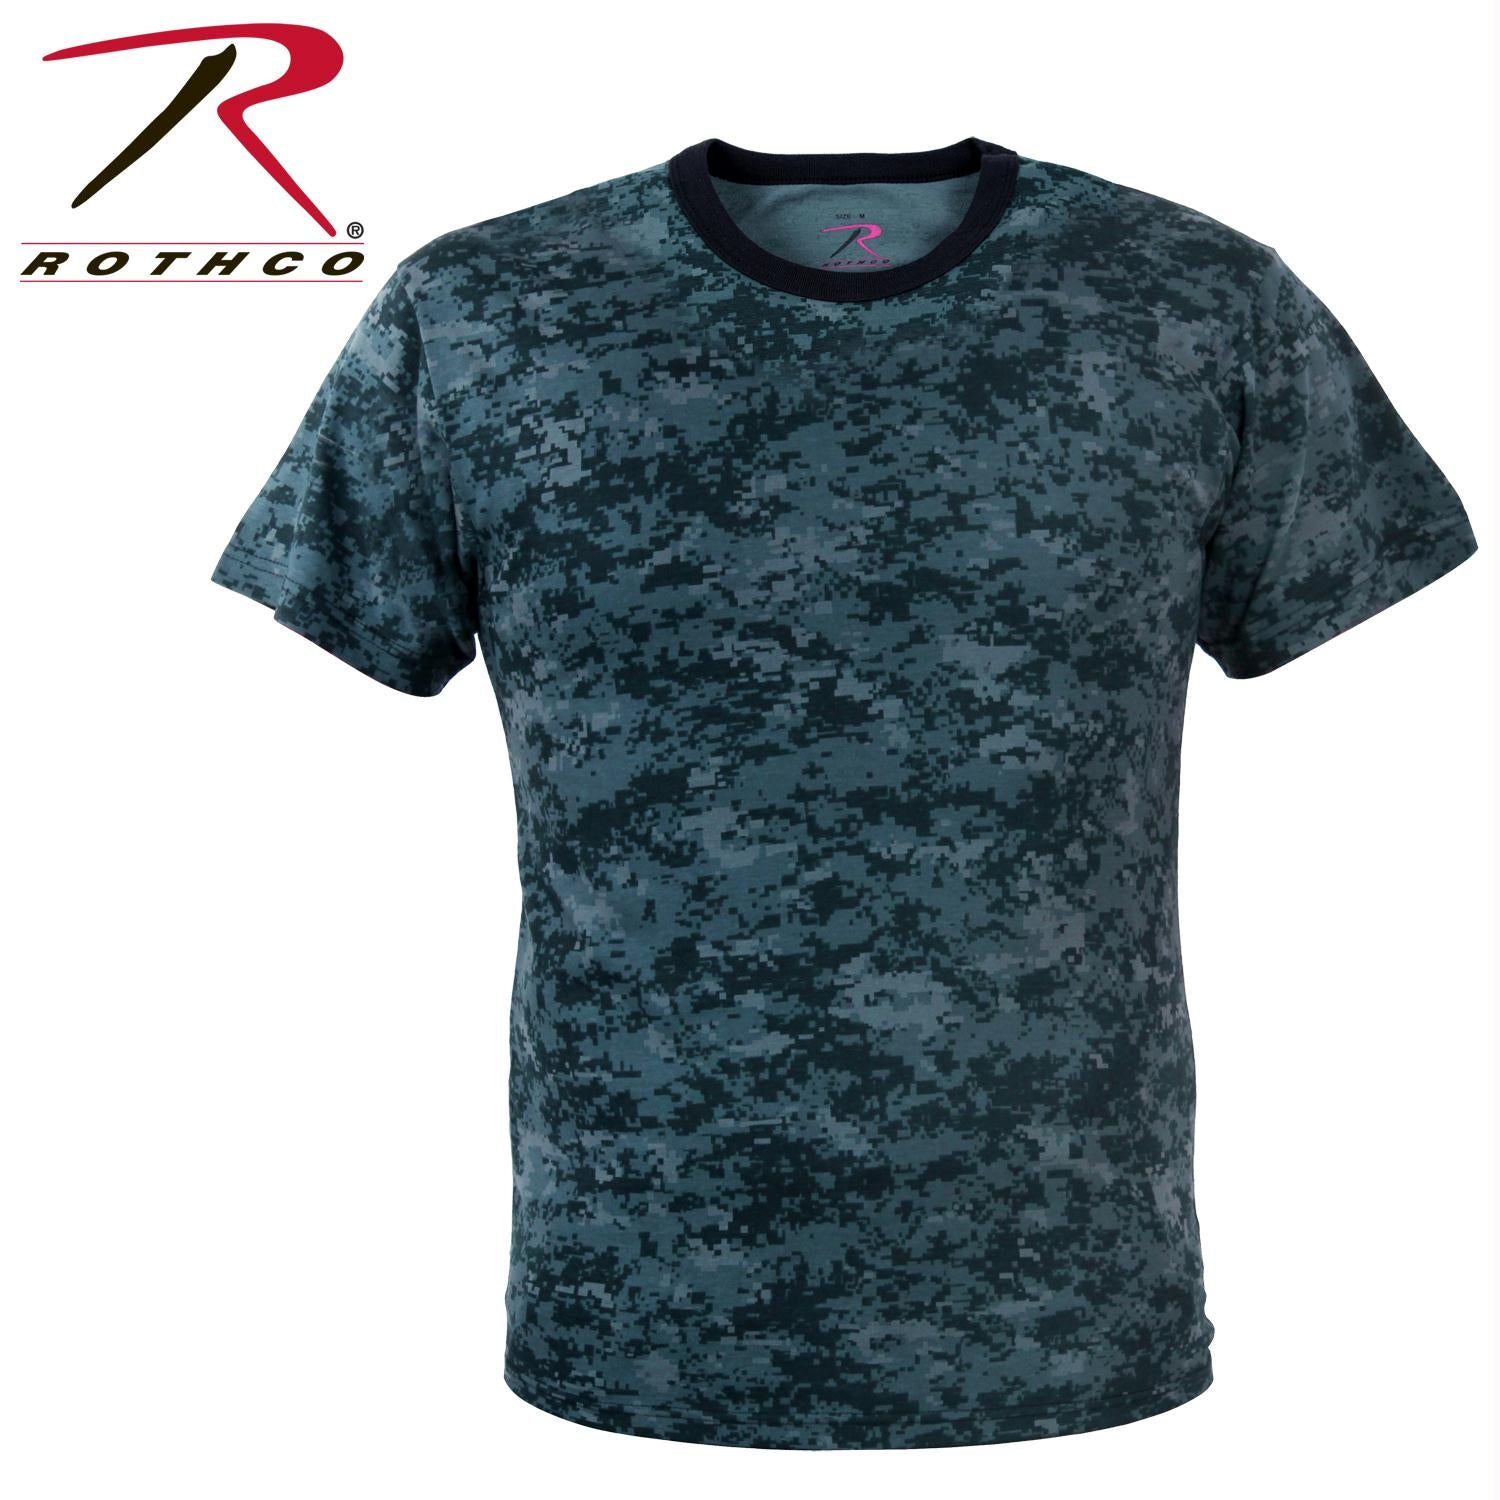 Rothco Digital Camo T-Shirt - Midnight Digital Camo / M